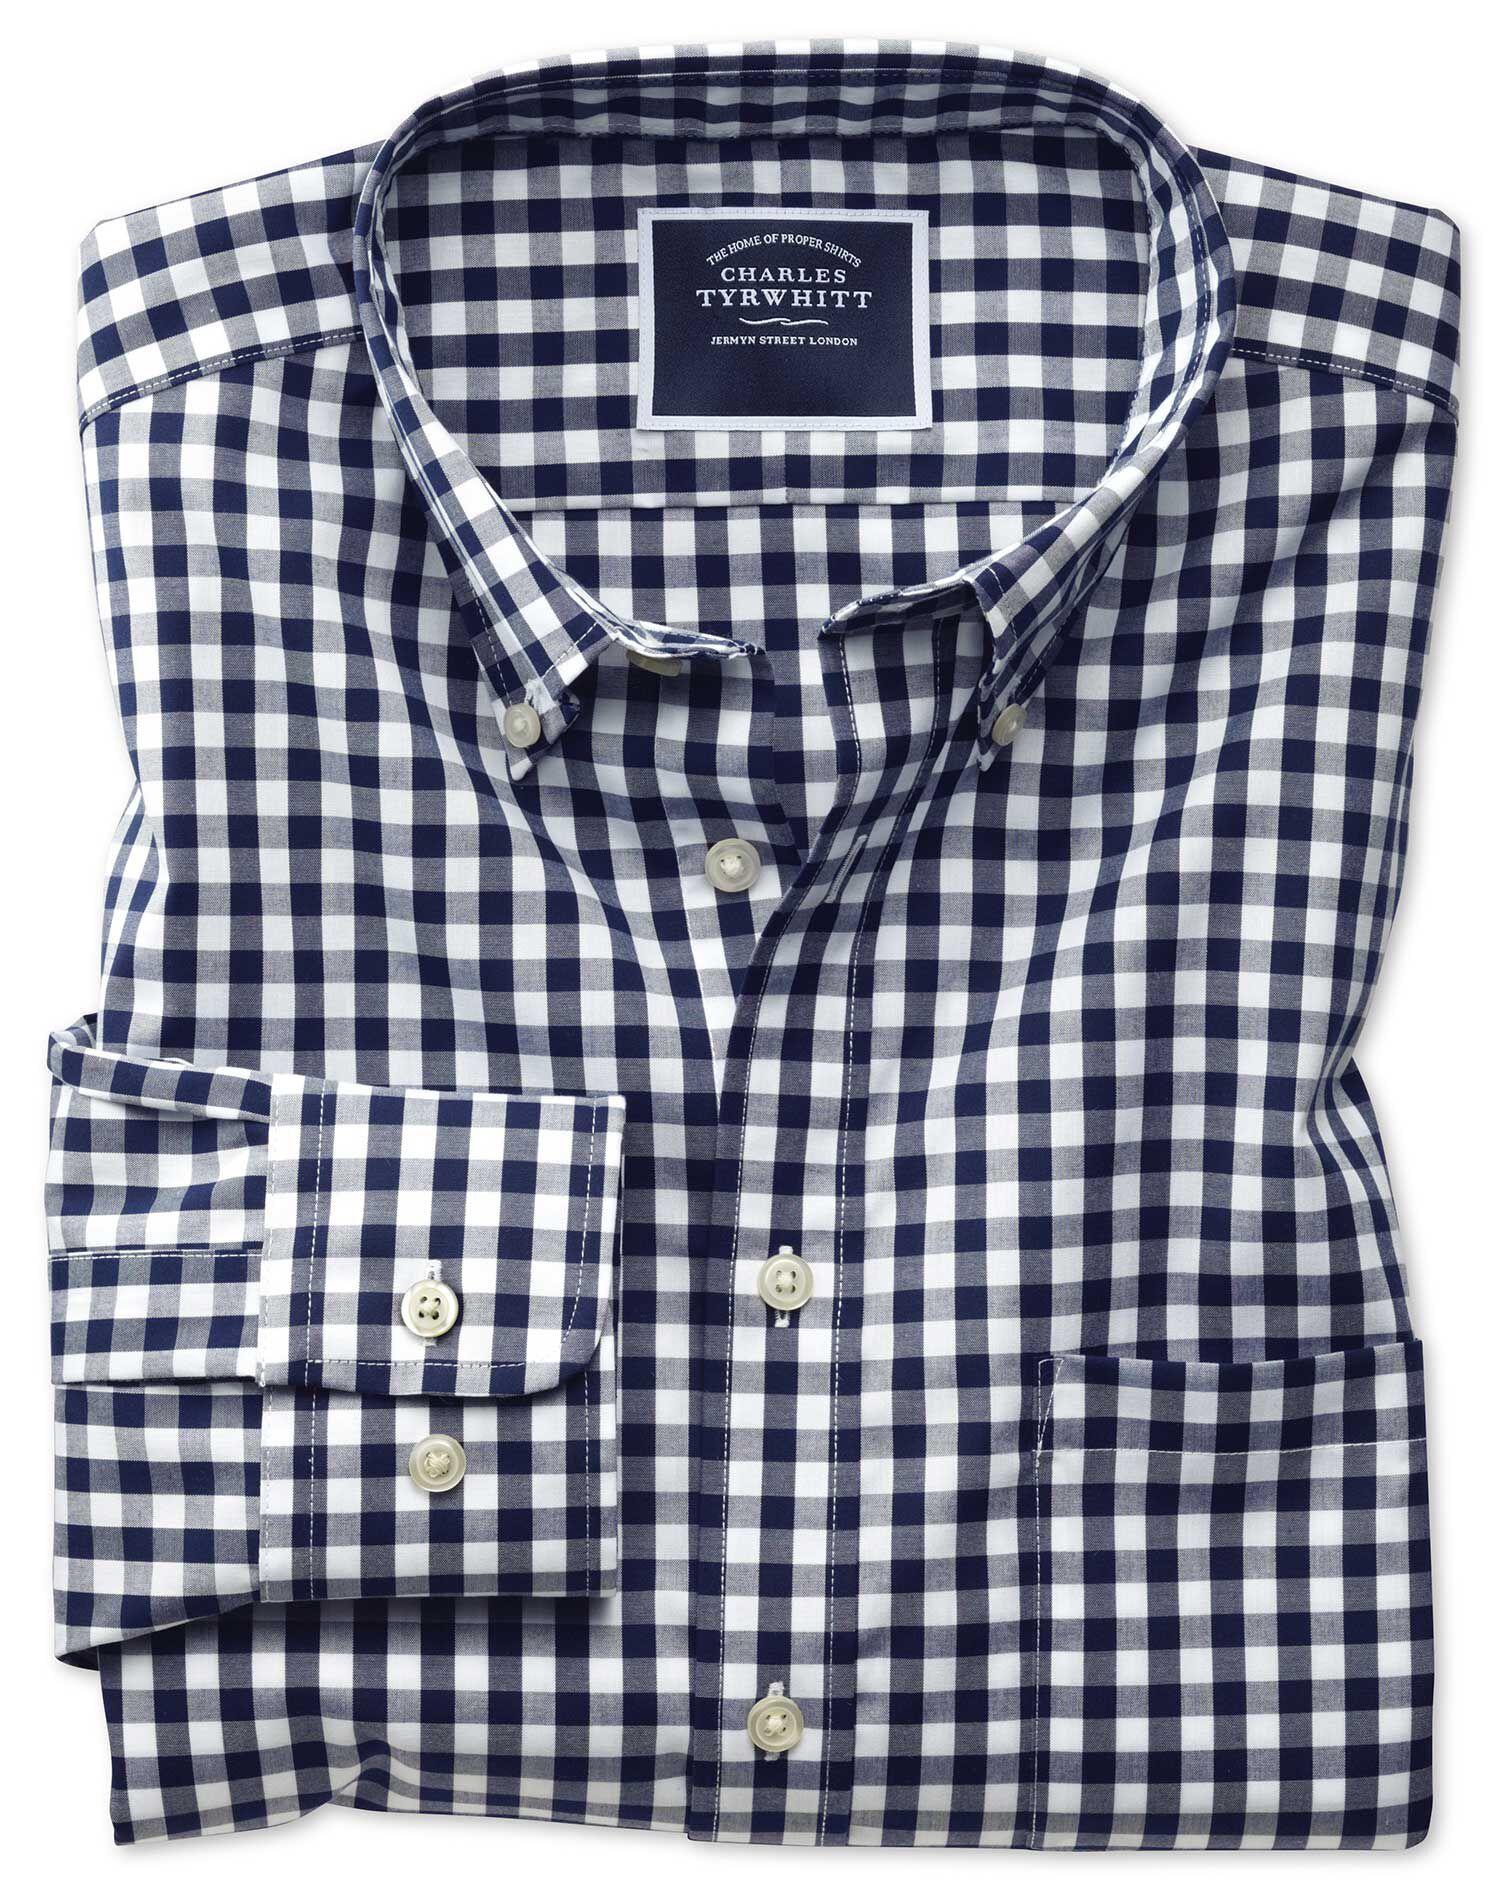 Classic Fit Button-Down Non-Iron Poplin Navy Blue Gingham Cotton Shirt Single Cuff Size XXXL by Char